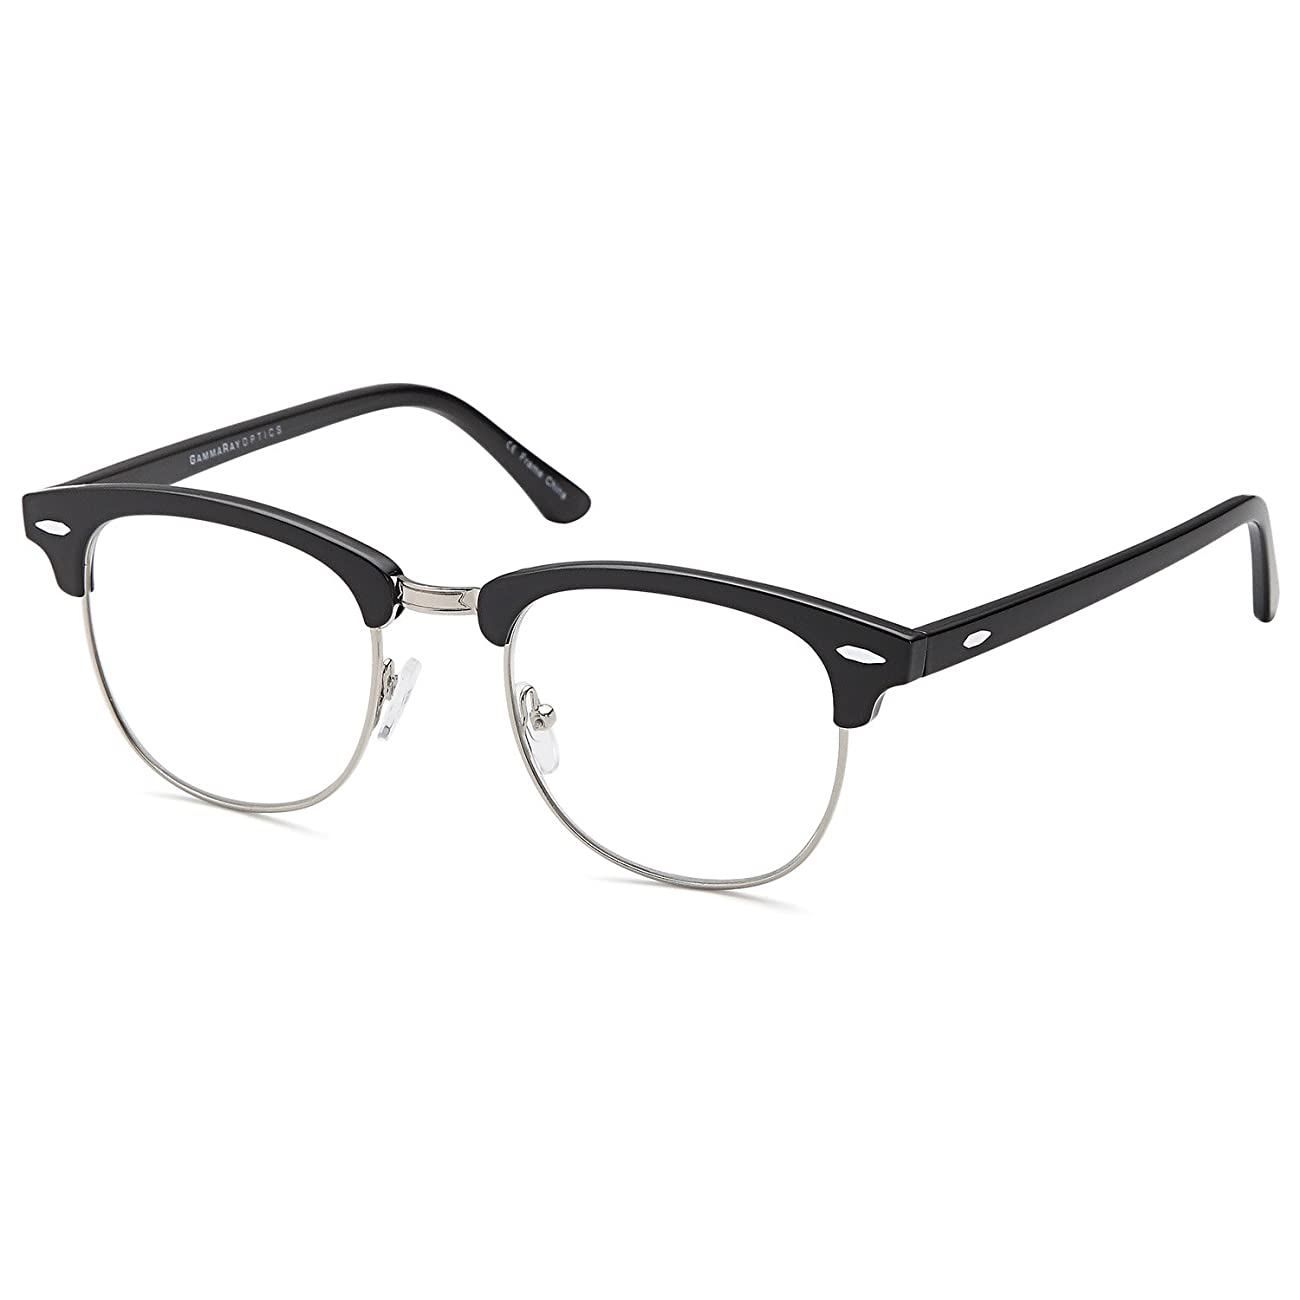 GAMMA RAY READERS Men's Vintage Readers Quality Reading Glasses for Men 1